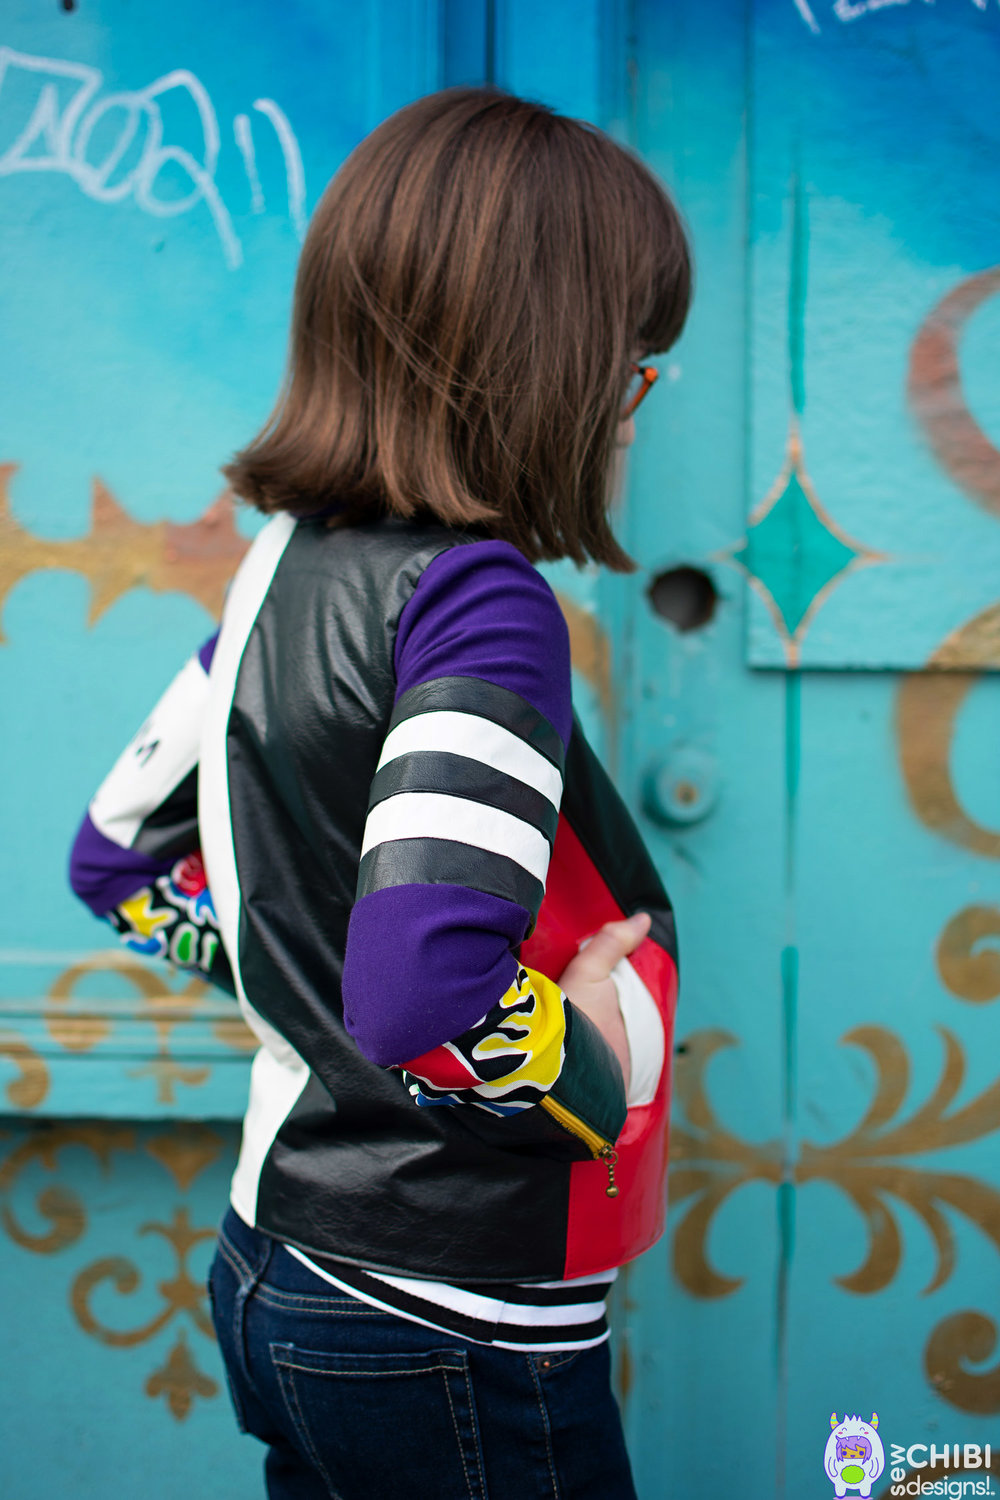 moto-jacket-by-sew-chibi-designs-6.jpg